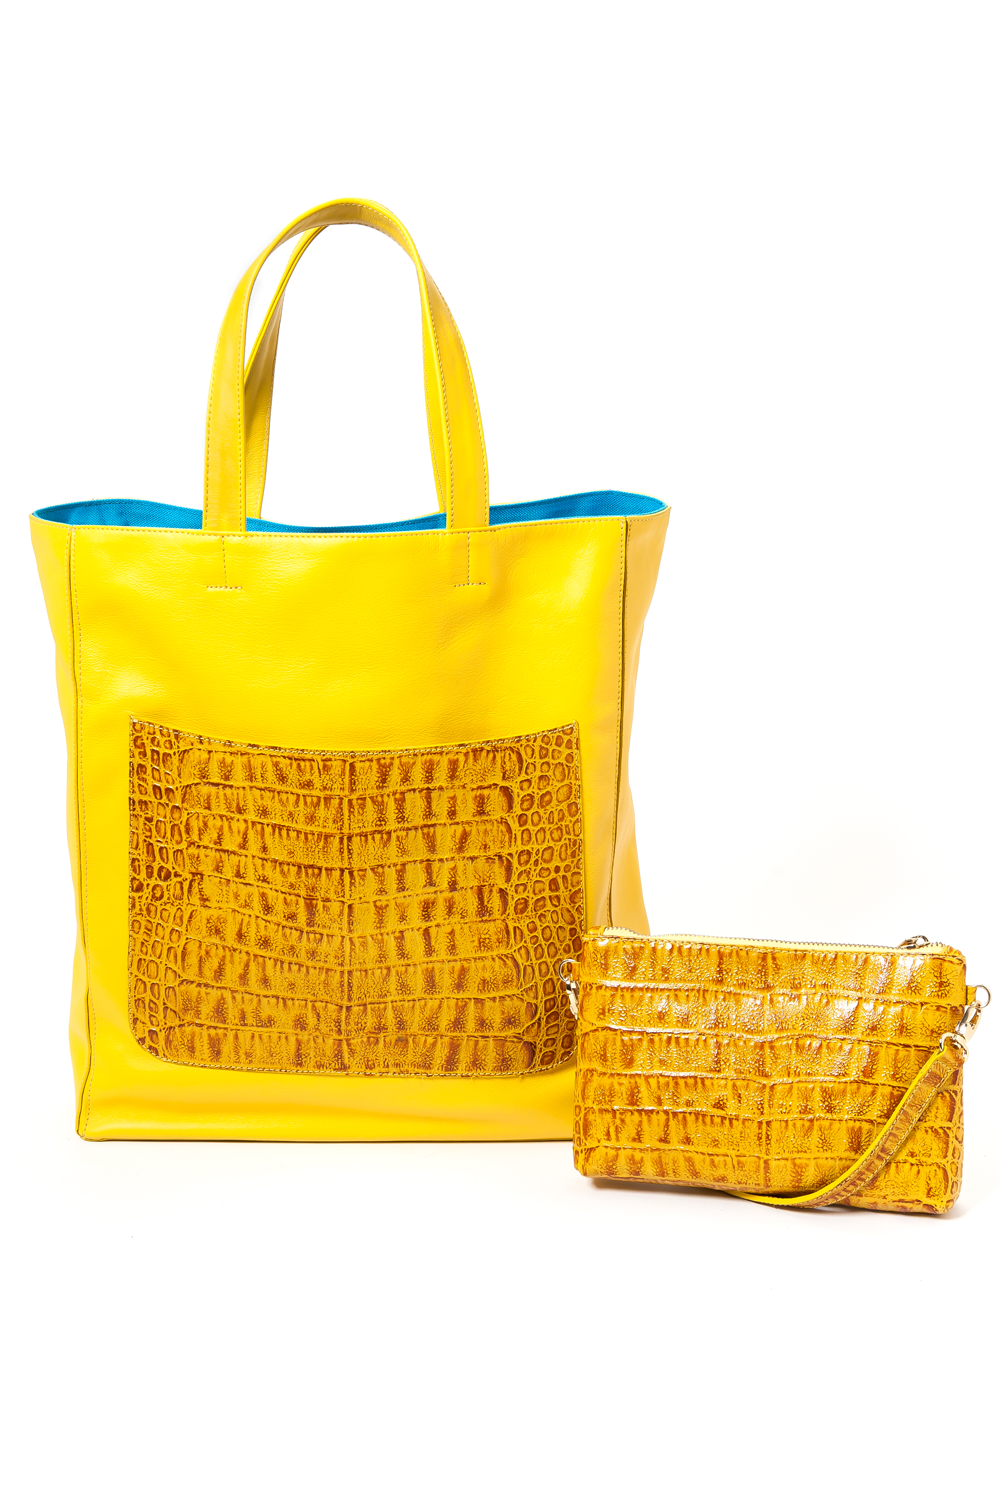 Marigold Yellow 'Stuart' Carryall Tote | Mel Boteri | Duo View